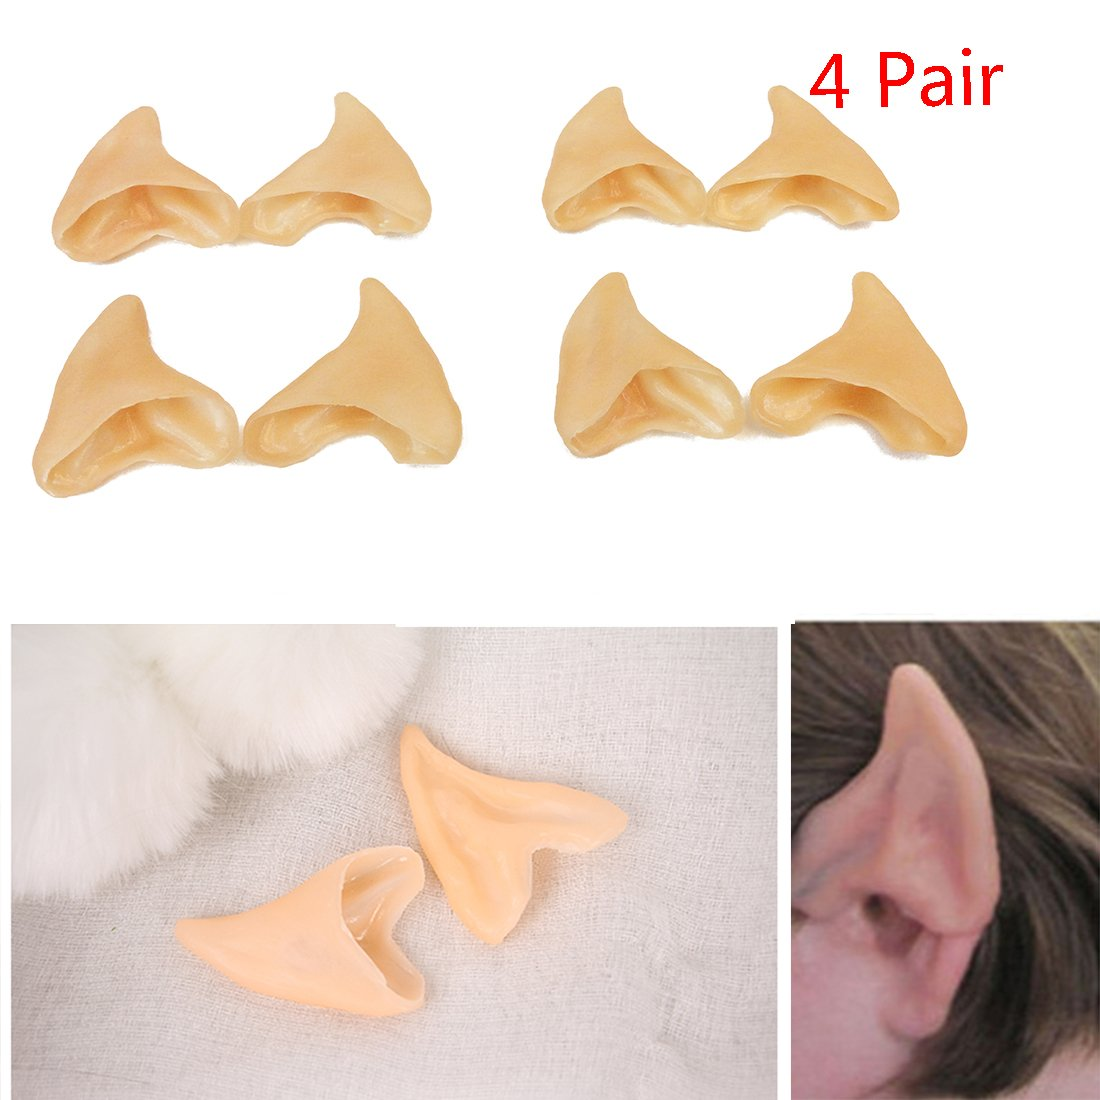 Kbraveo 4 Pair Latex Soft Elf Ear Fake Ears Ear Tips For Any Themed Party